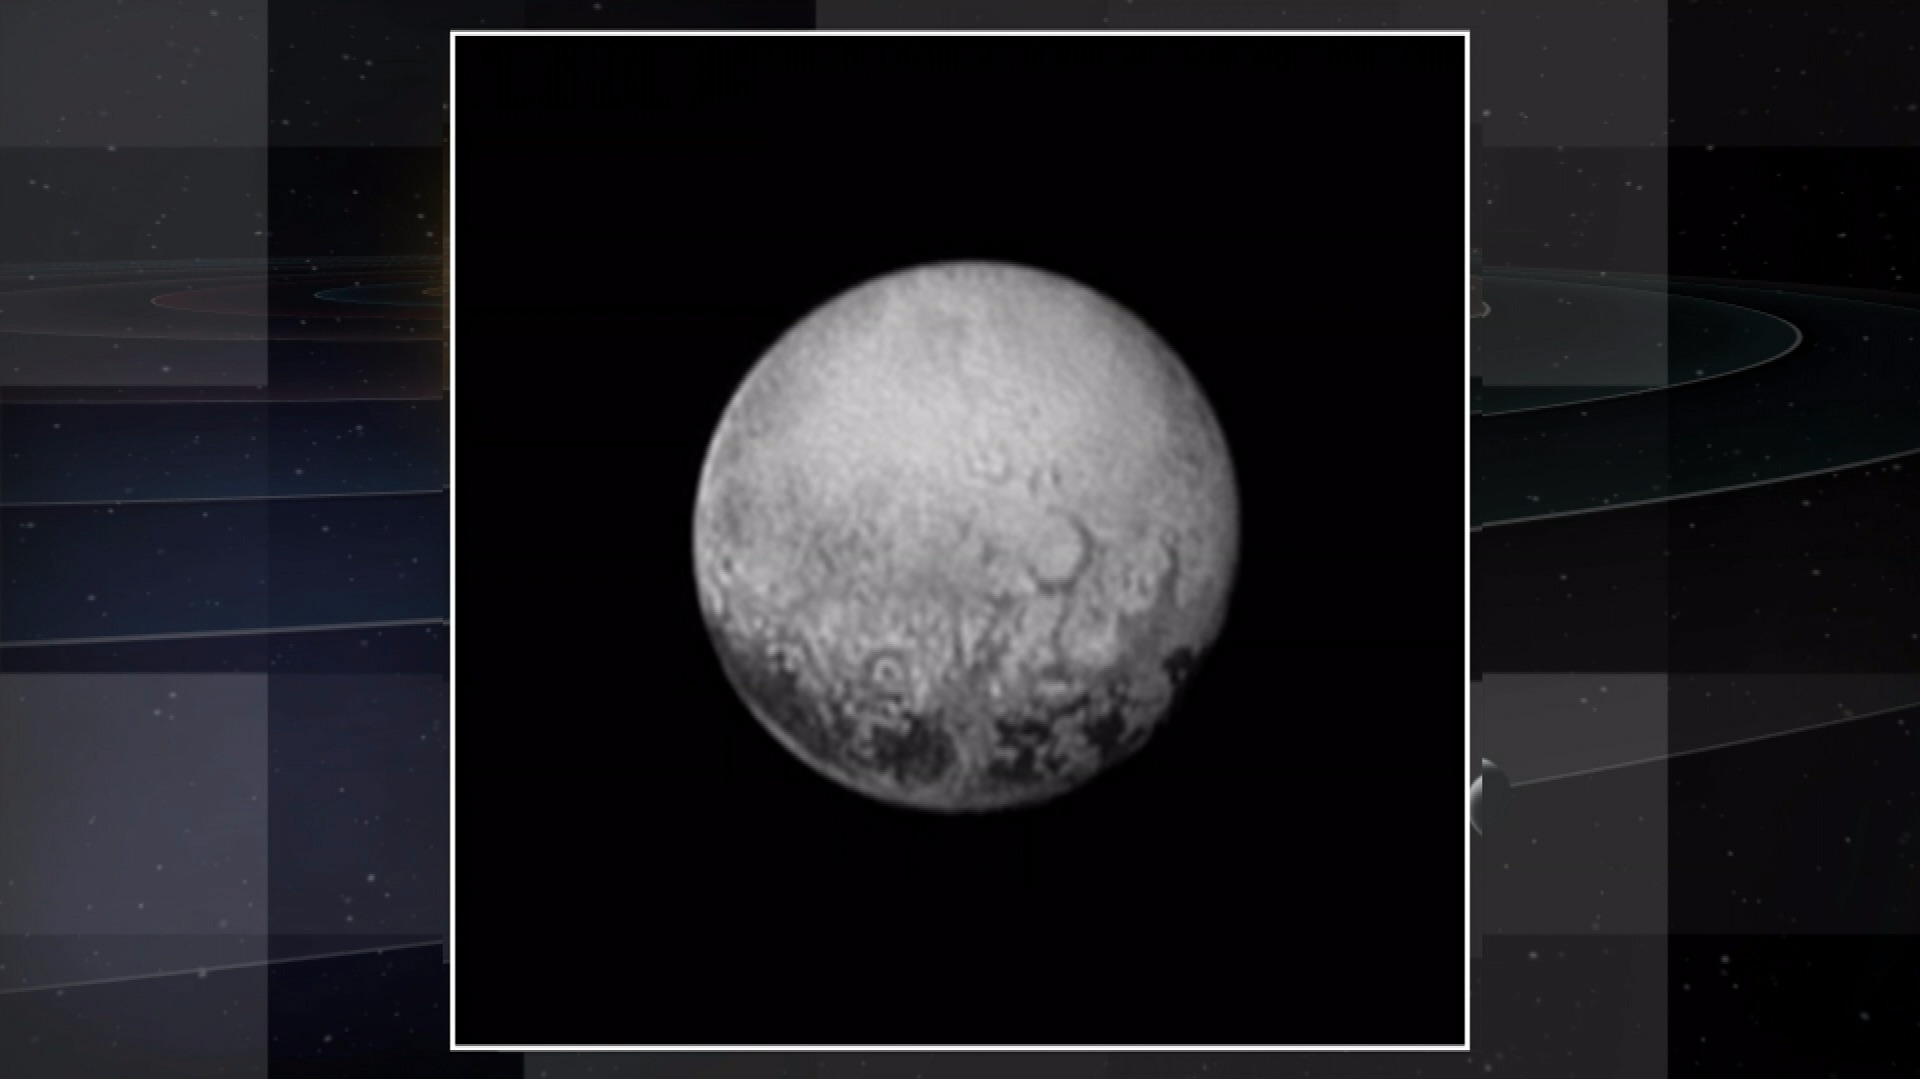 Countdown to historic flypast of dwarf planet Pluto - ITV News